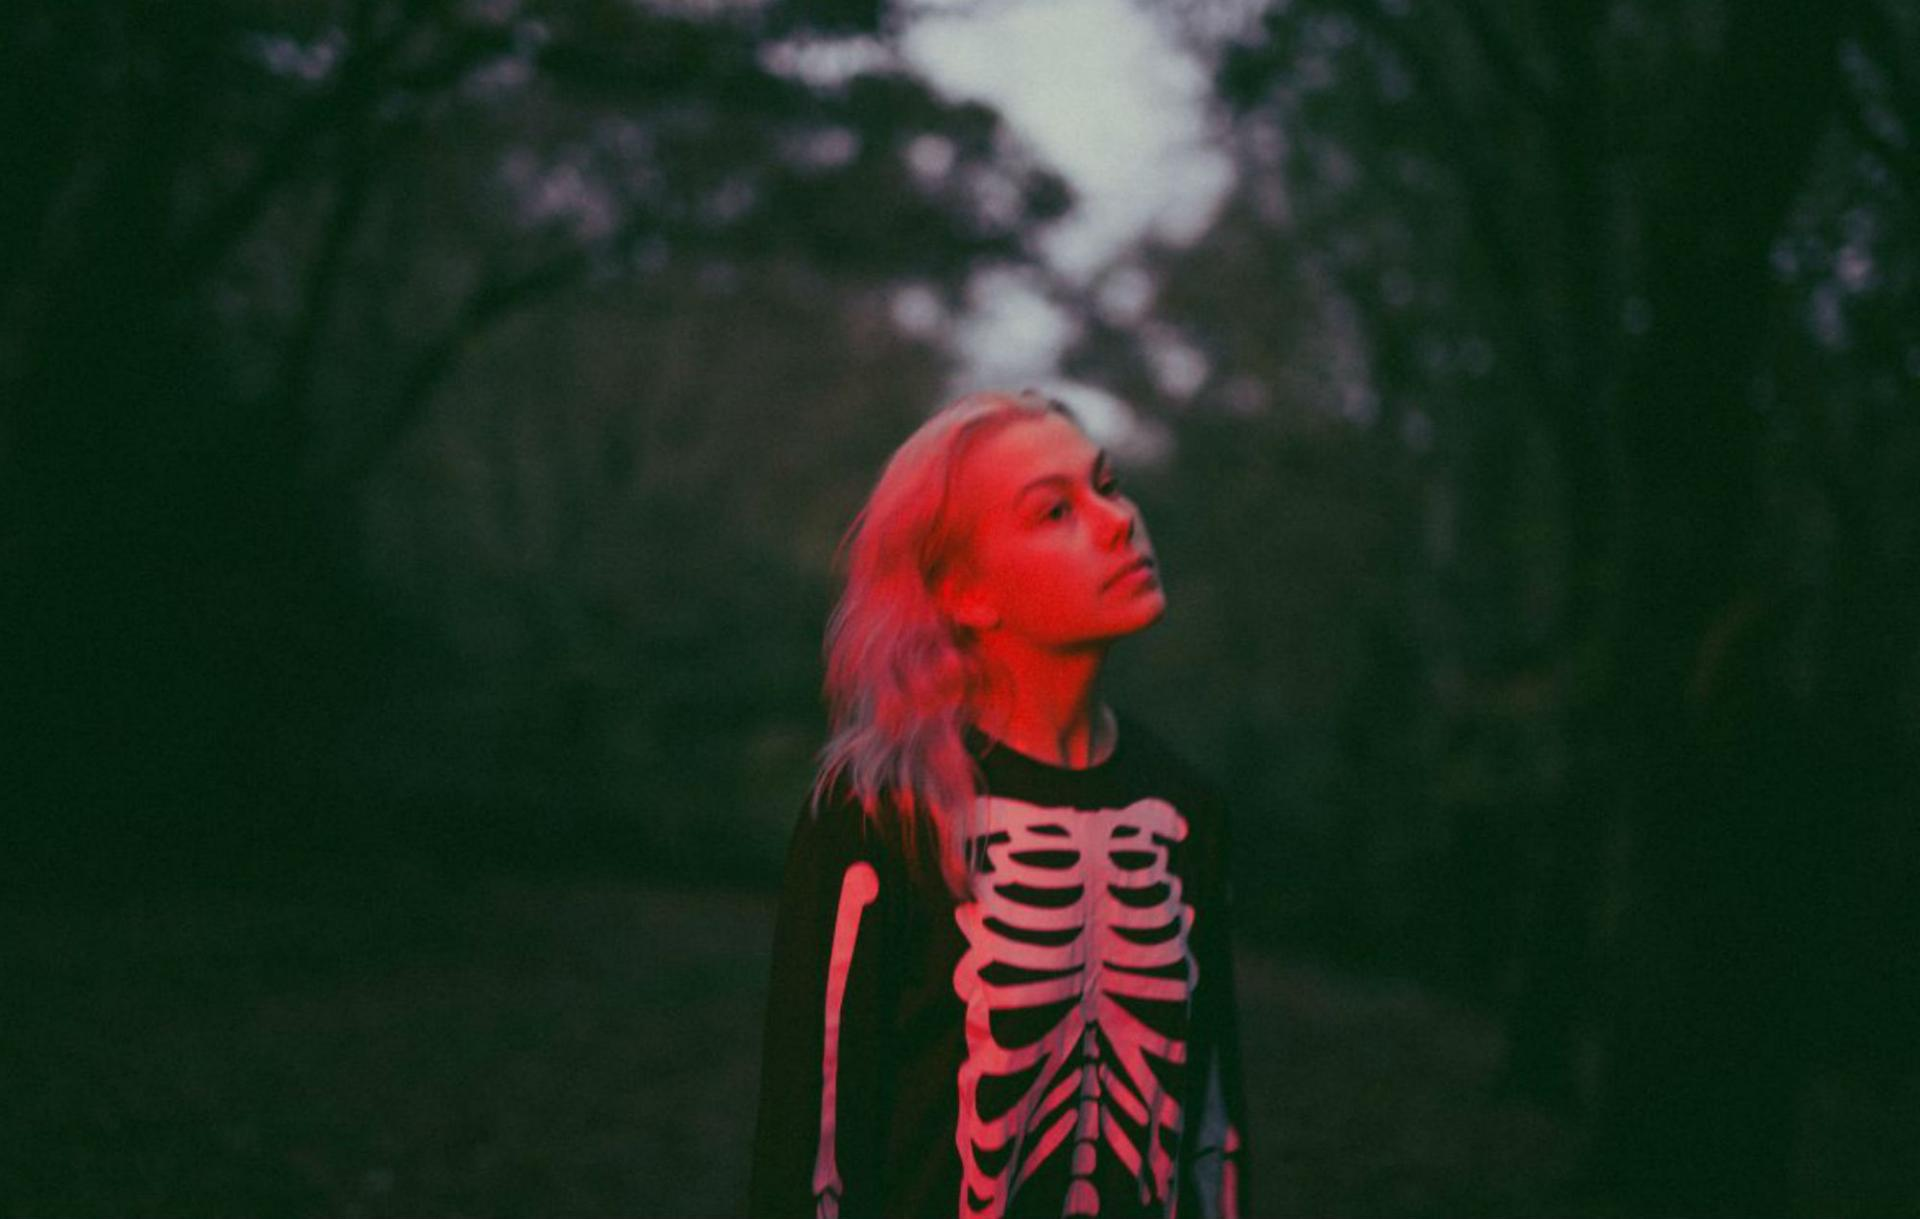 Punisher - Phoebe Bridgers